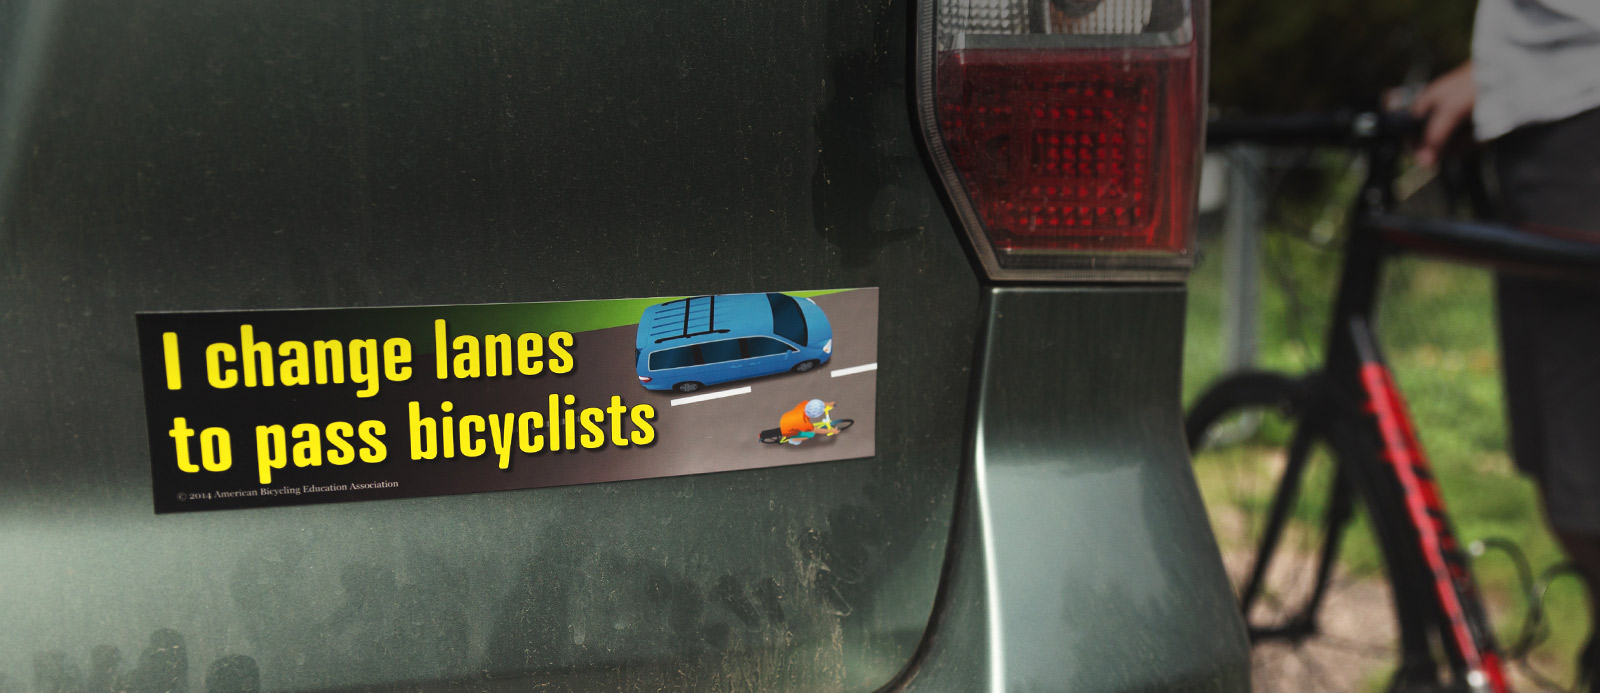 Bumper magnets by Sticker Mule